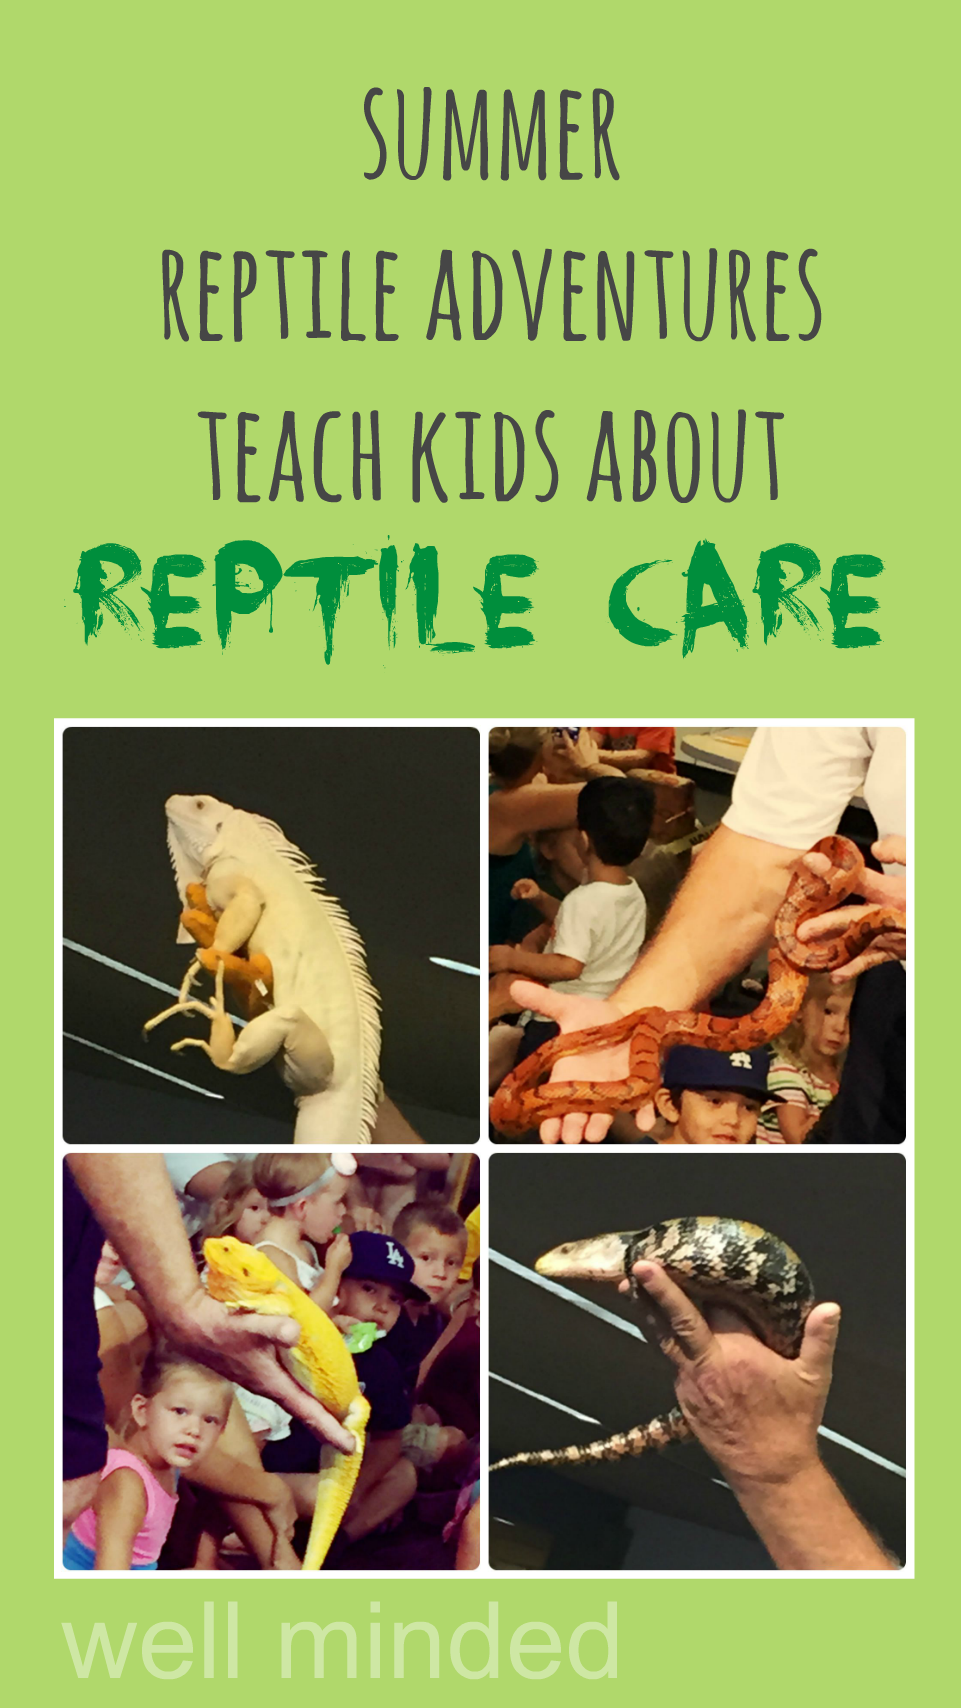 Summer reptile adventures teach kids about #ReptileCare.